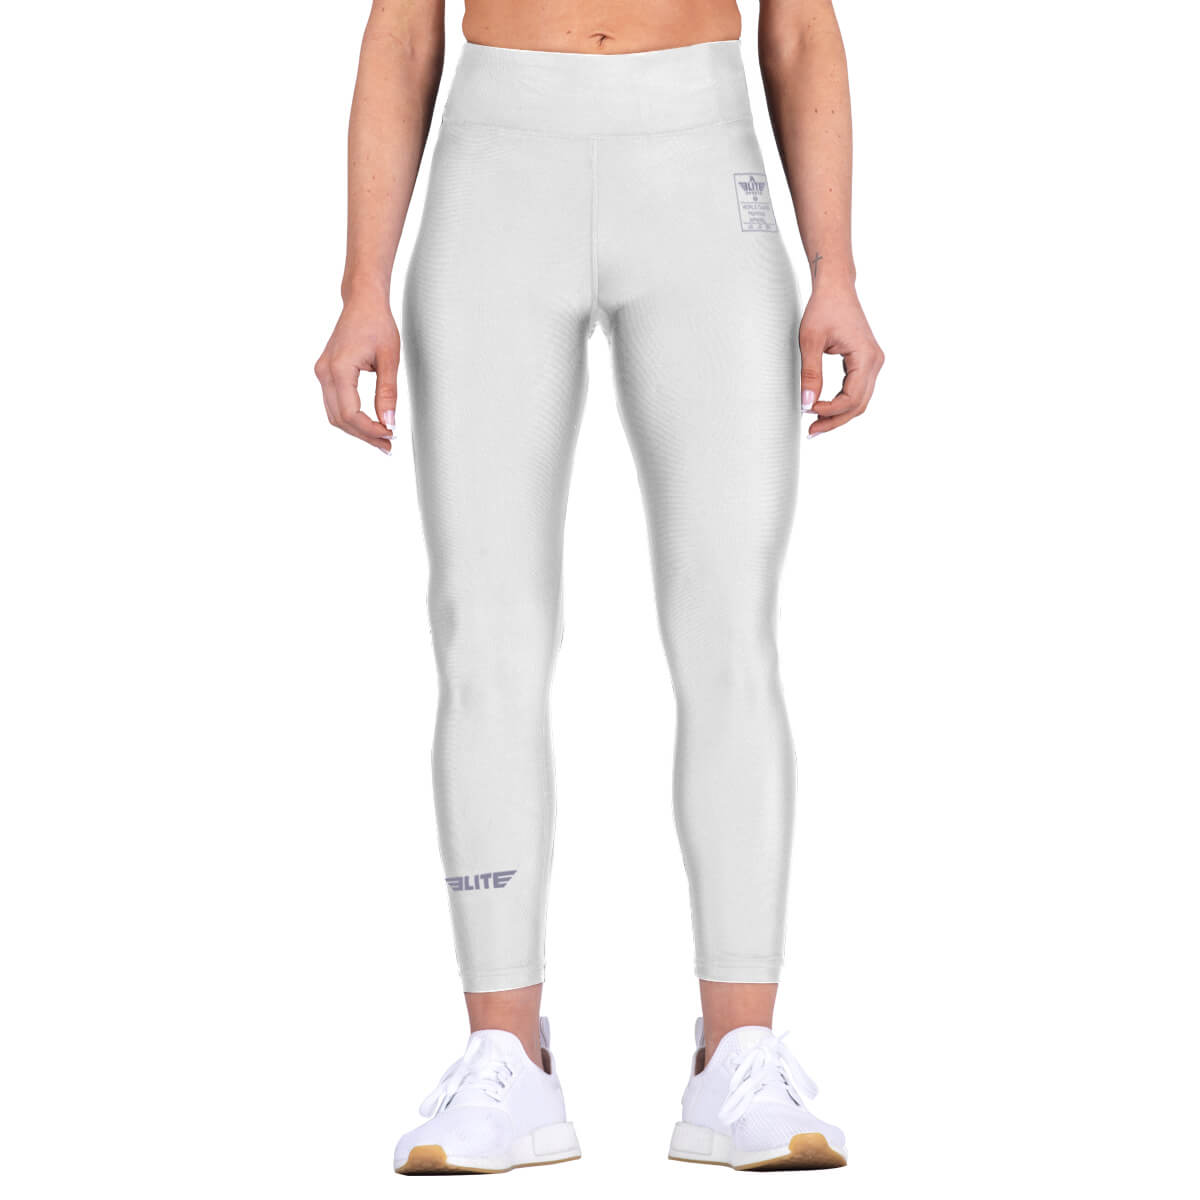 Elite Sports White Women Compression Judo Spat Pants